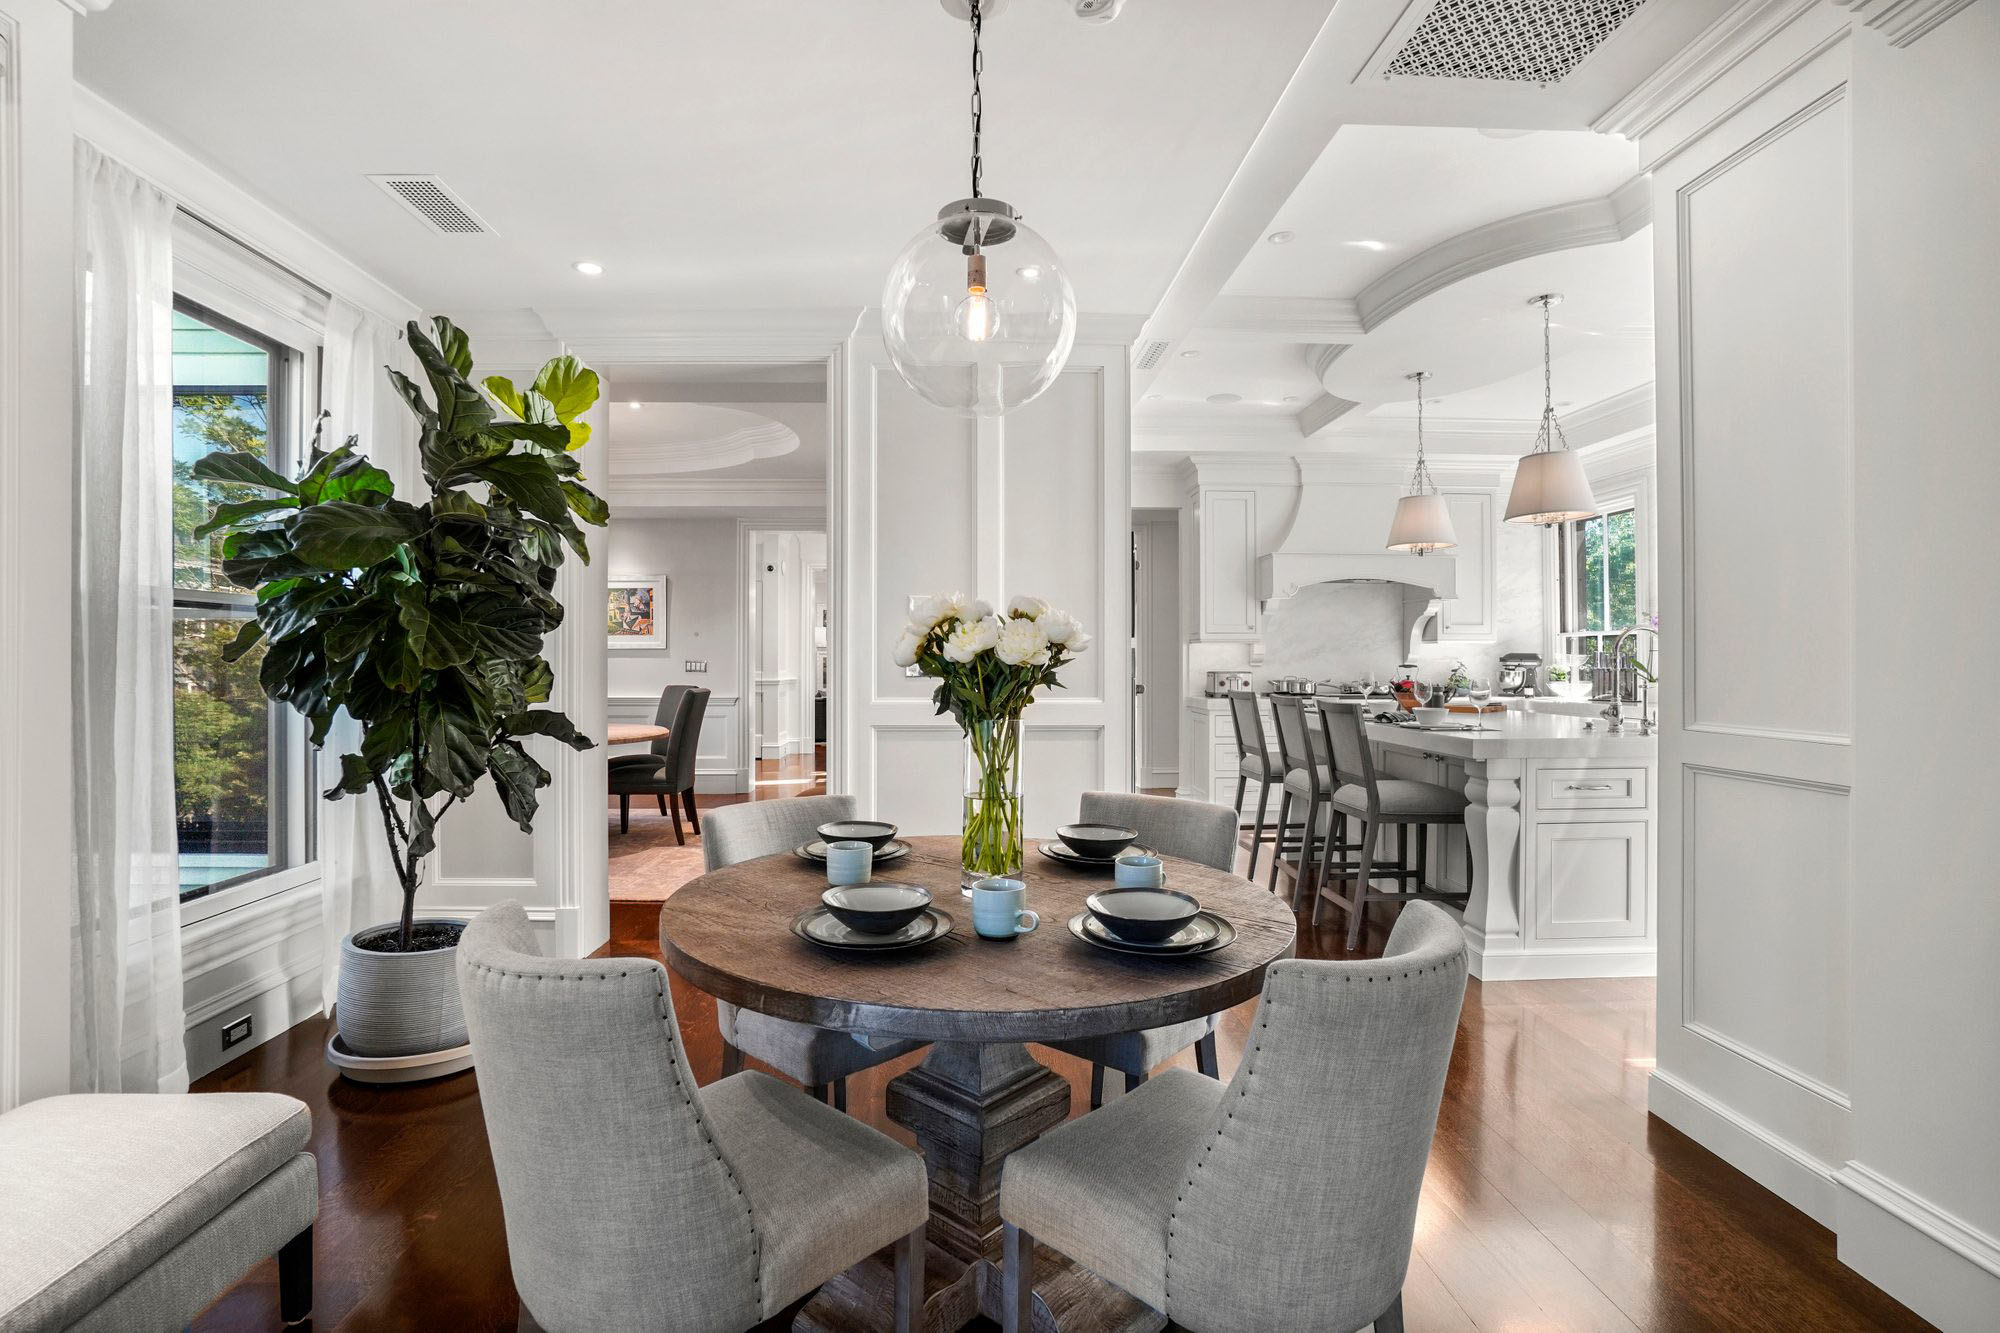 Kitchen seating area with 4 seat round wood table.